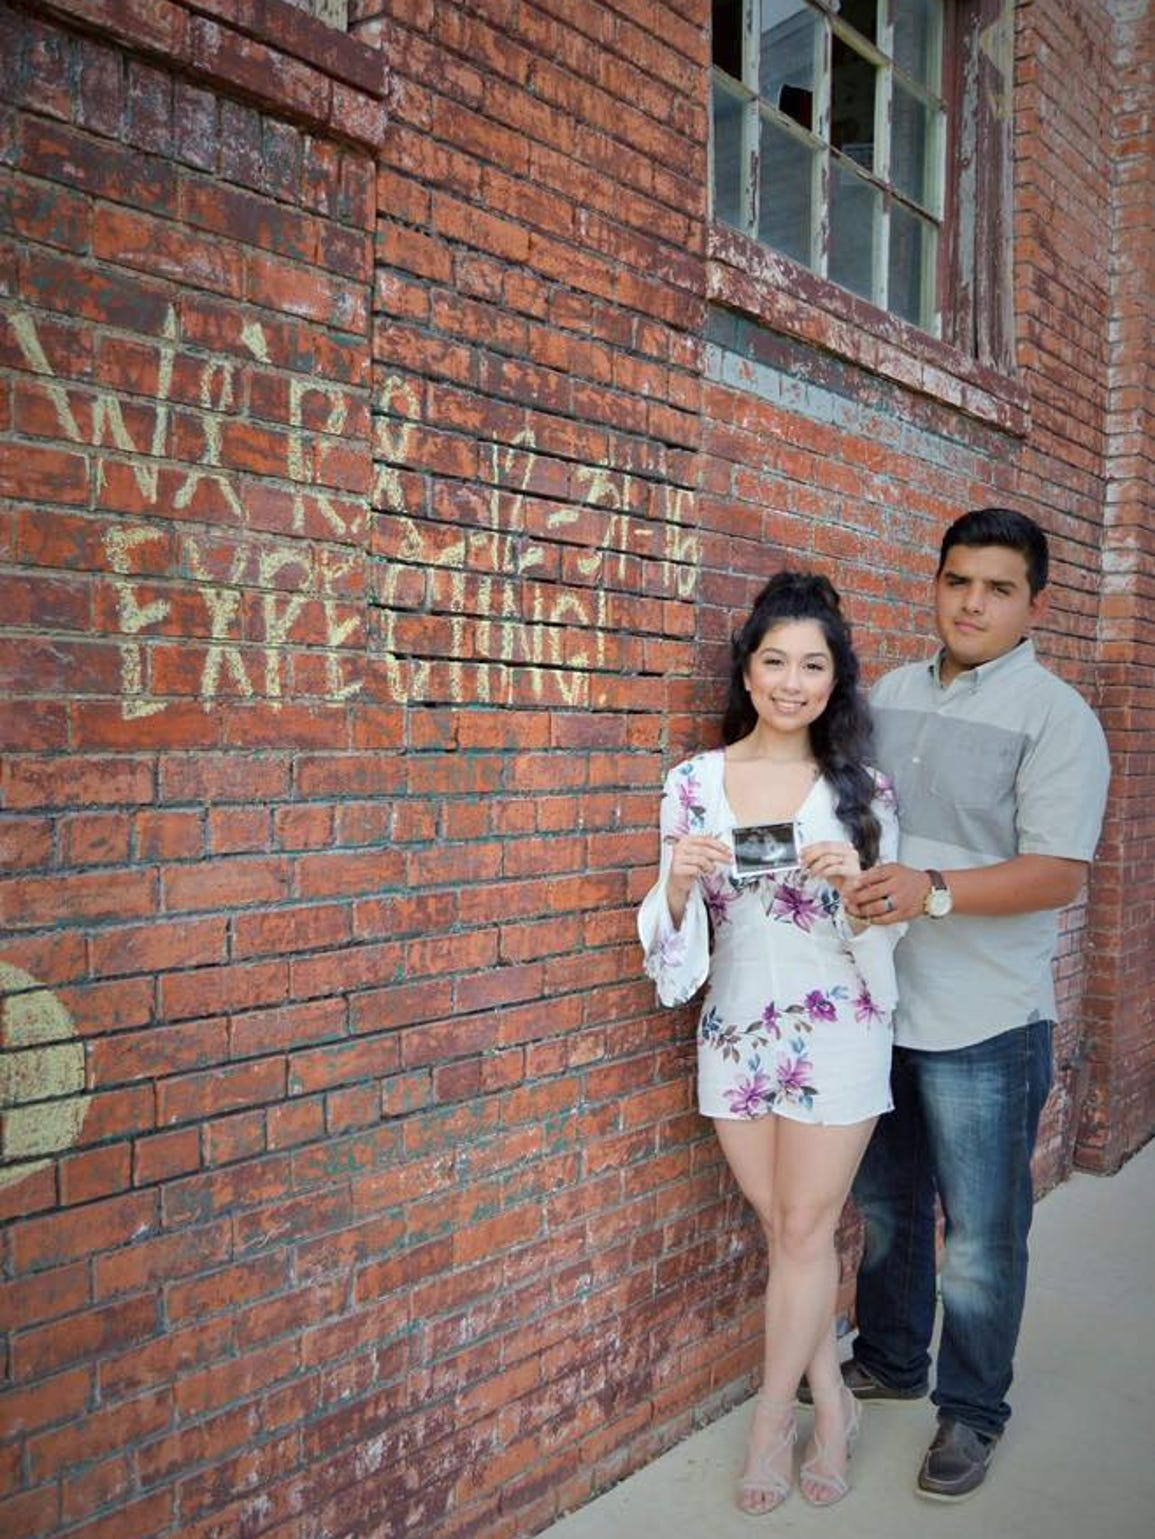 Kristian and Fabian Guerrero were expecting a son,